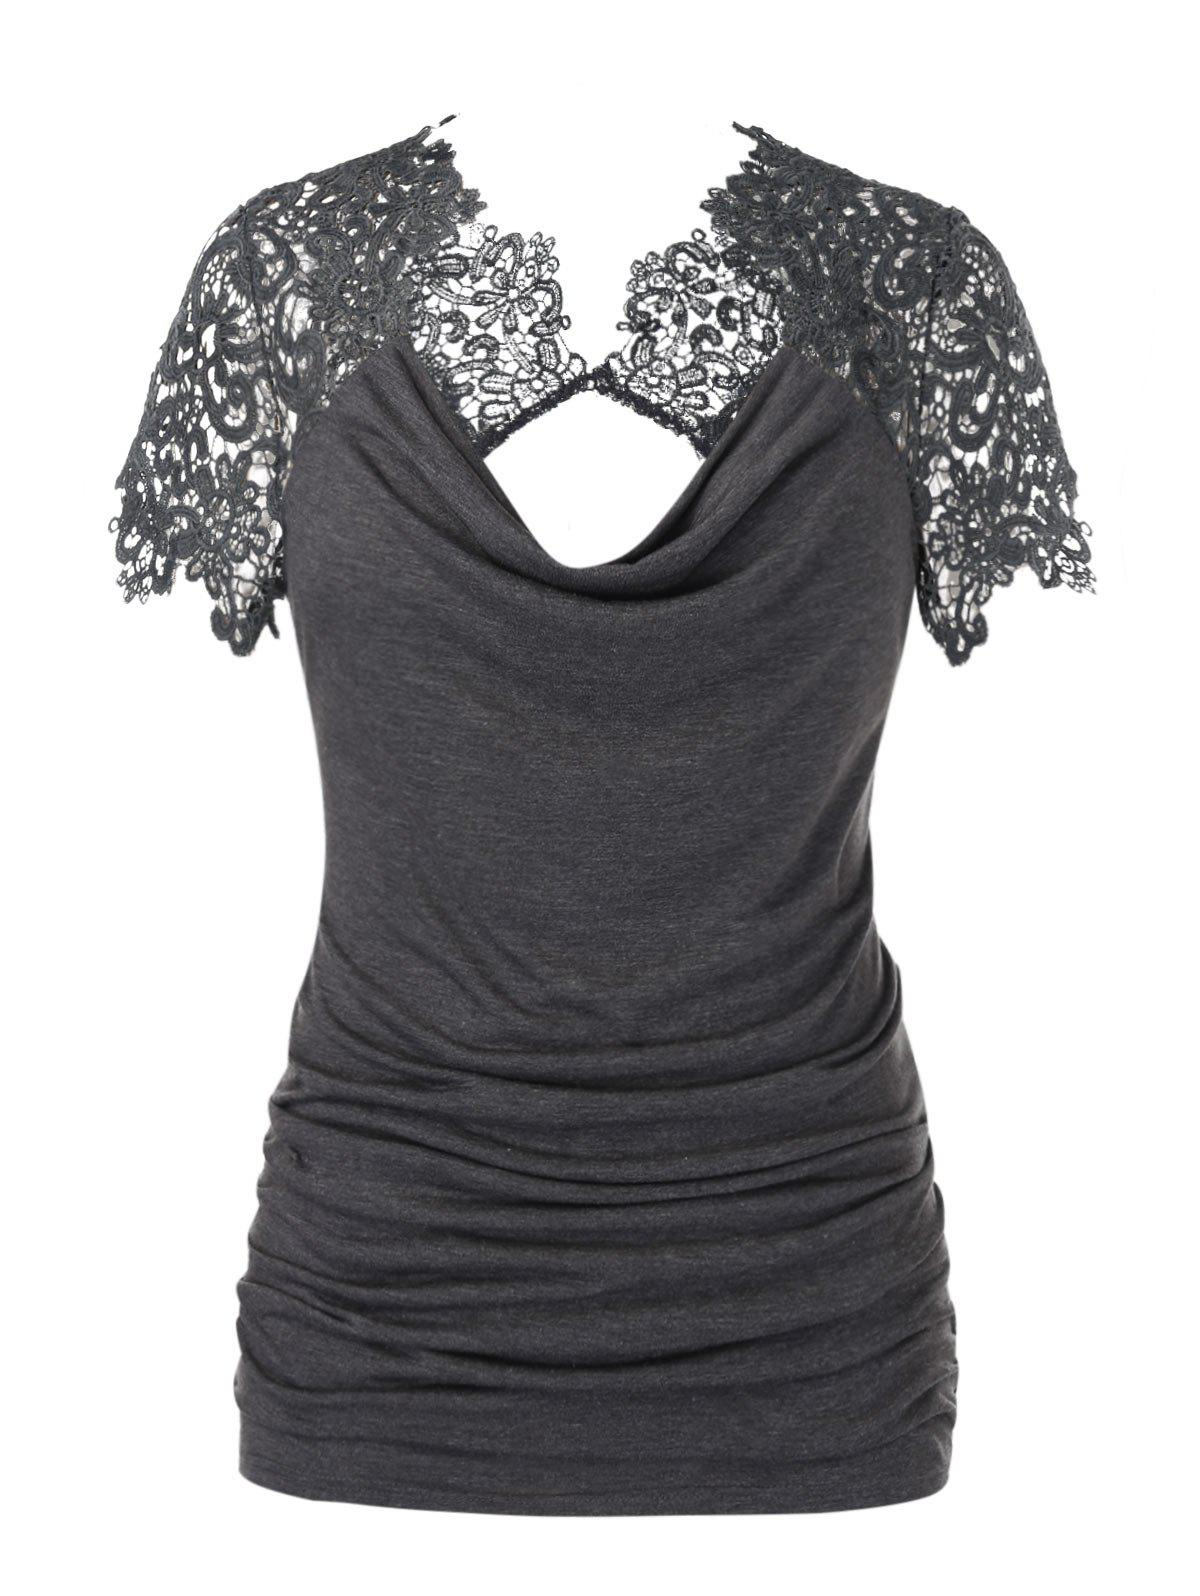 Plus Size Cowl Neck Lace Insert Ruched Cutout T Shirt фото